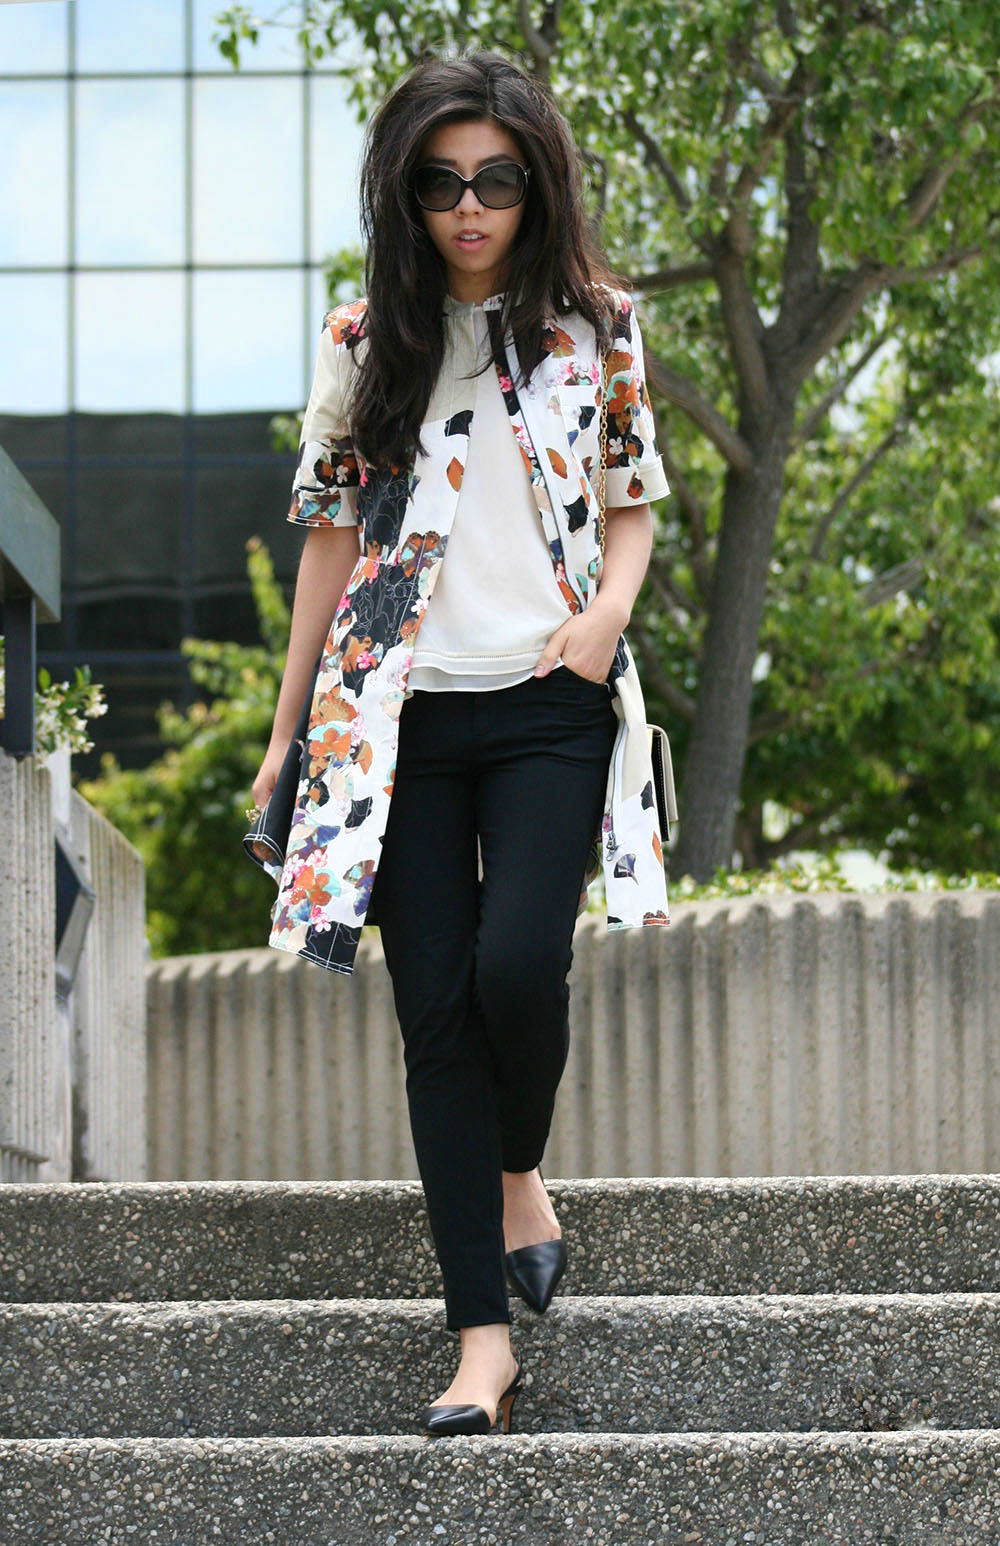 Adrienne Nguyen_Invictus_girly and Classy Banana Republic Fashion